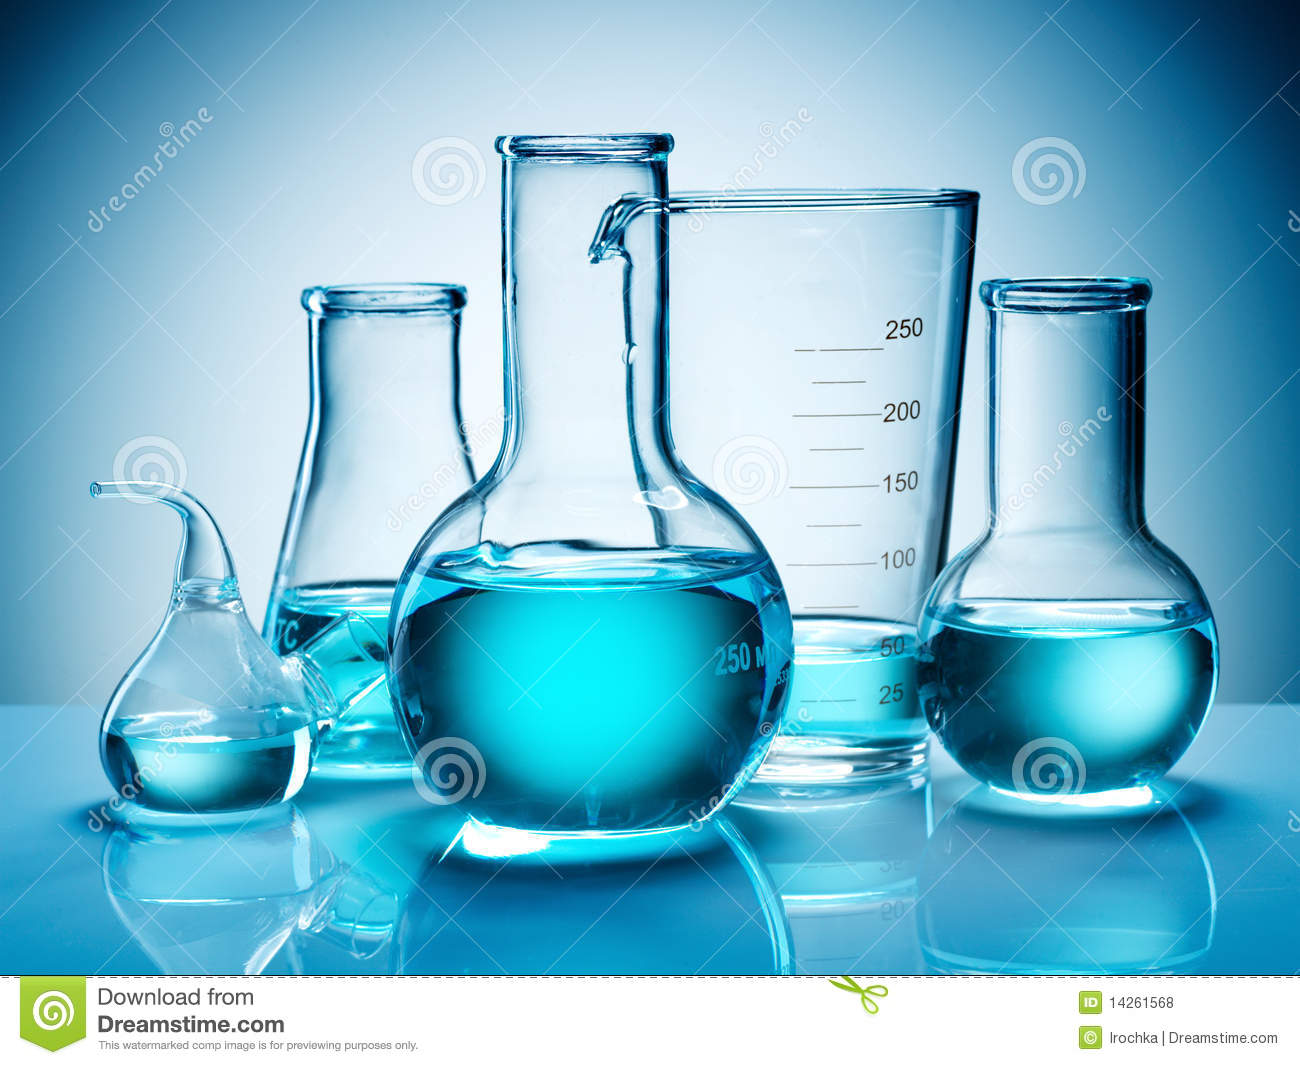 Beakers And Flasks Royalty Free Stock Photos Image 14261568